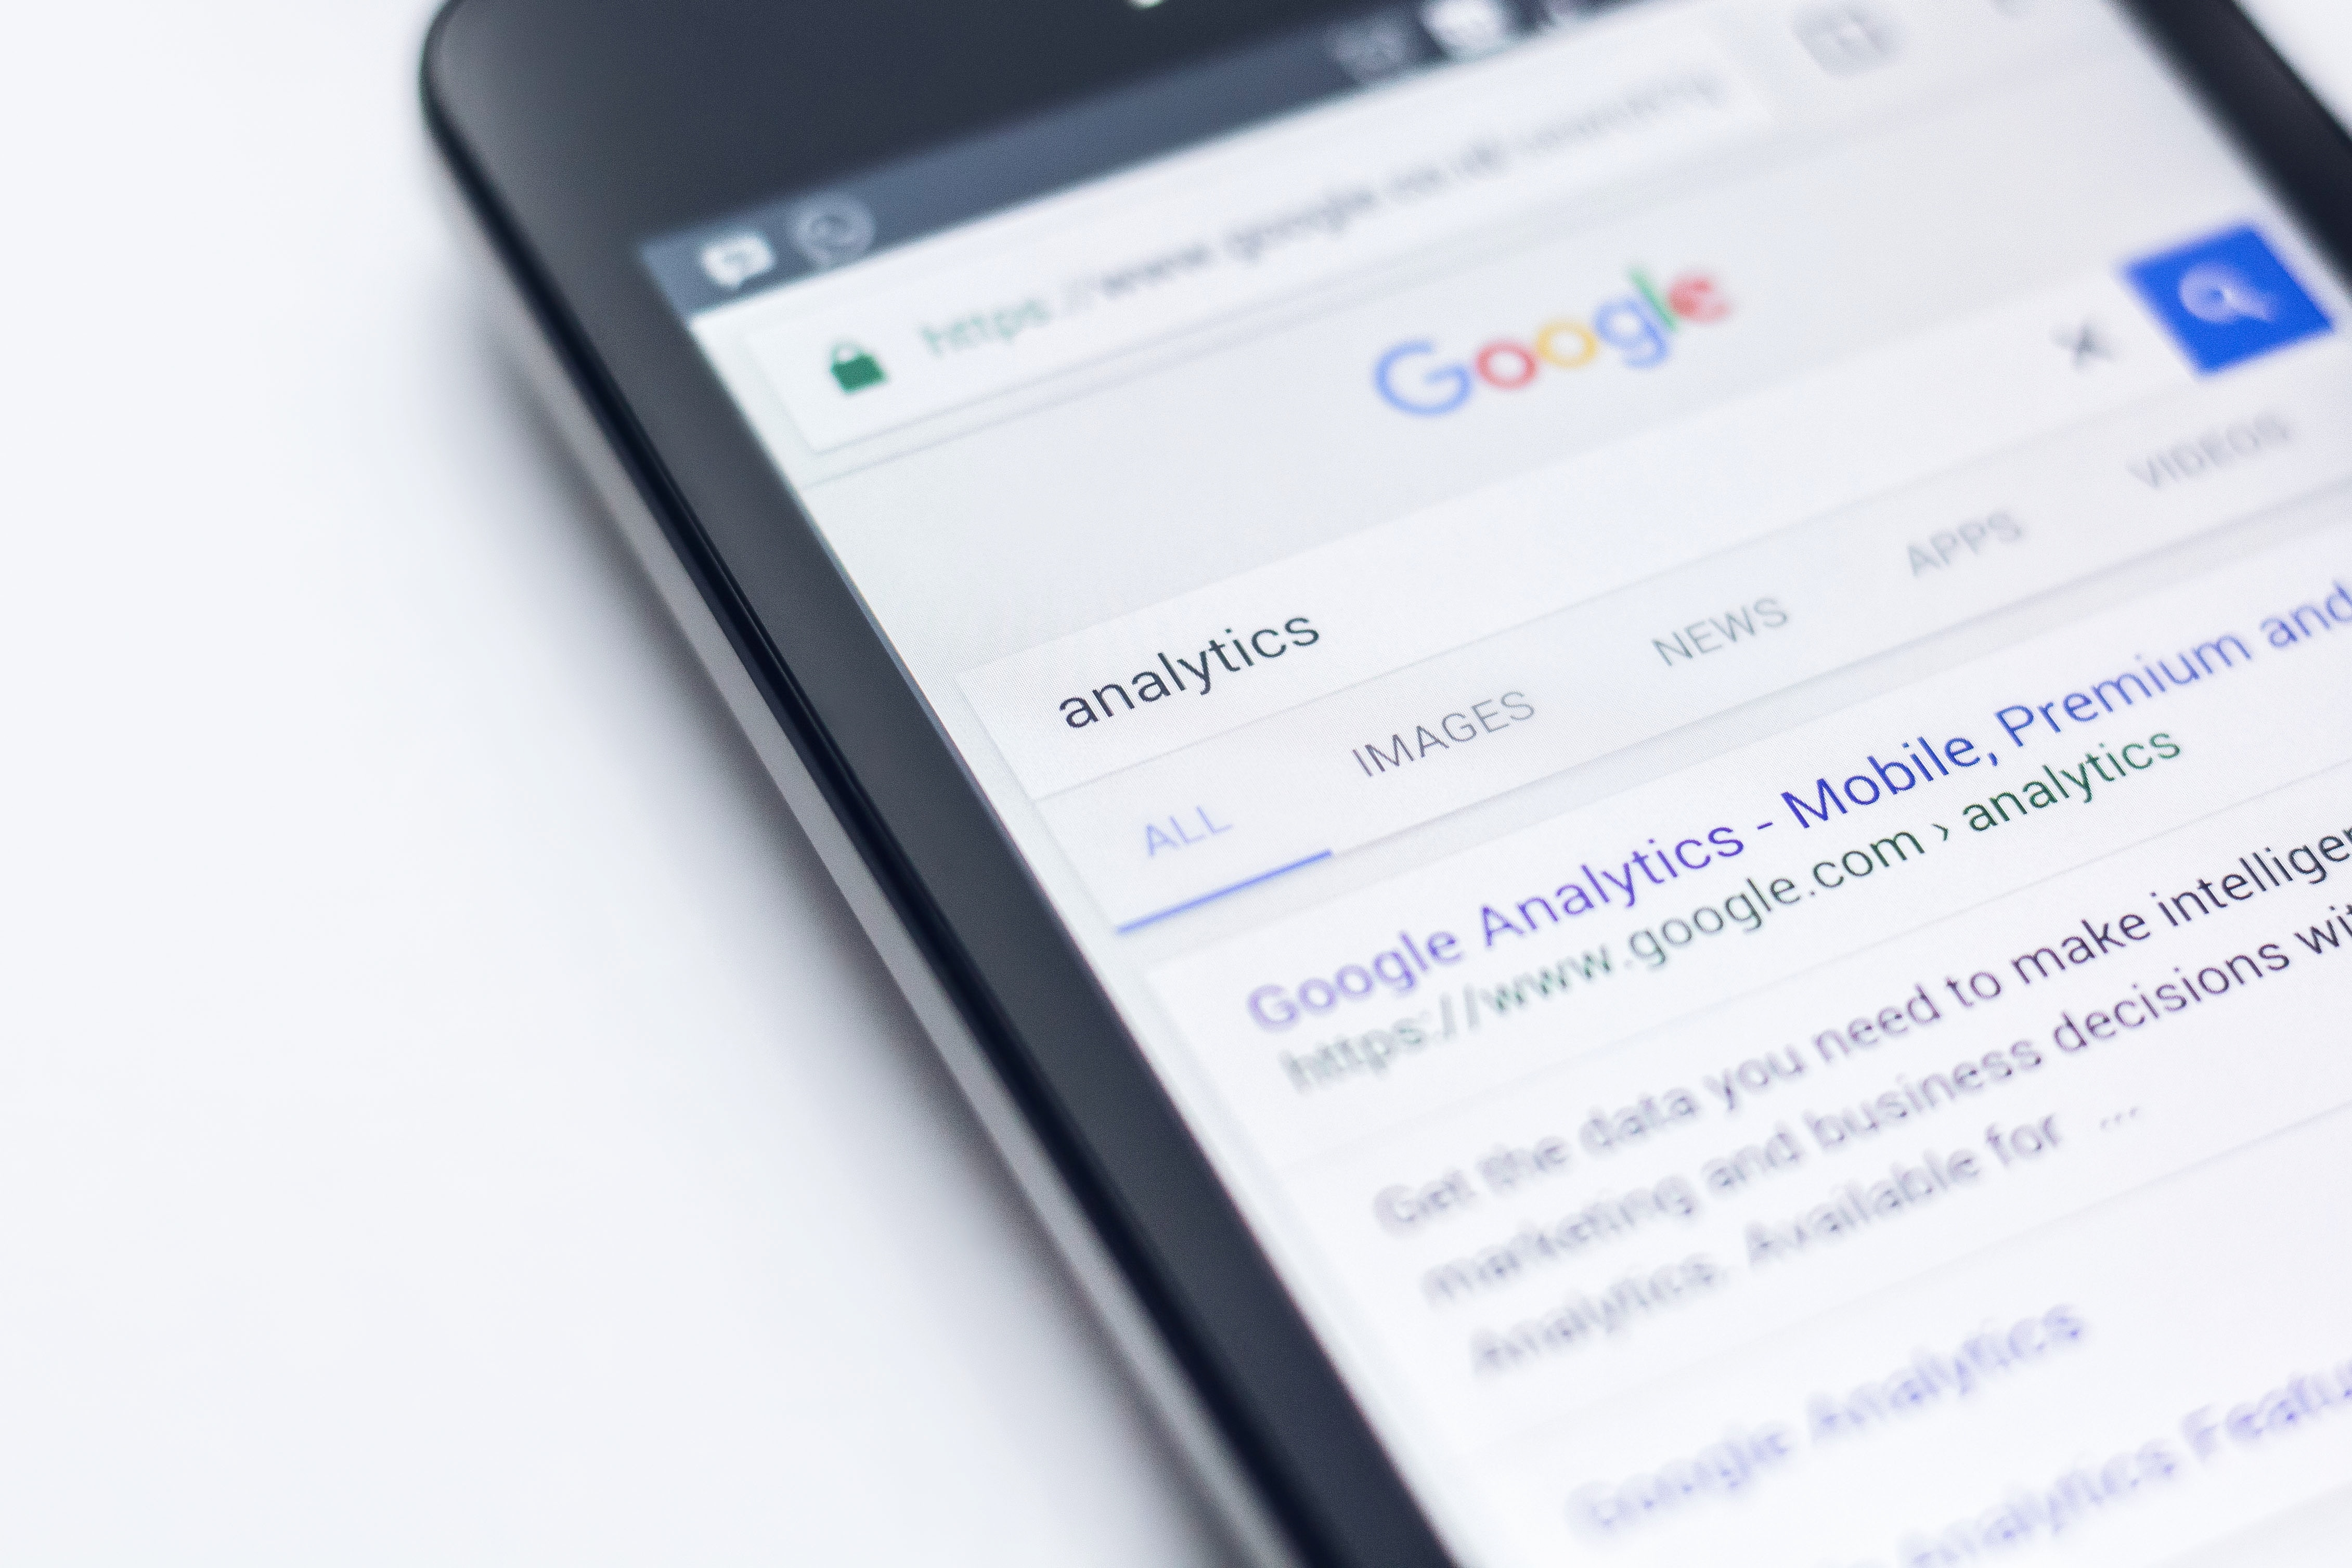 Google Search Update: Breadcrumb SERPs Evidence of Mobile First Index?